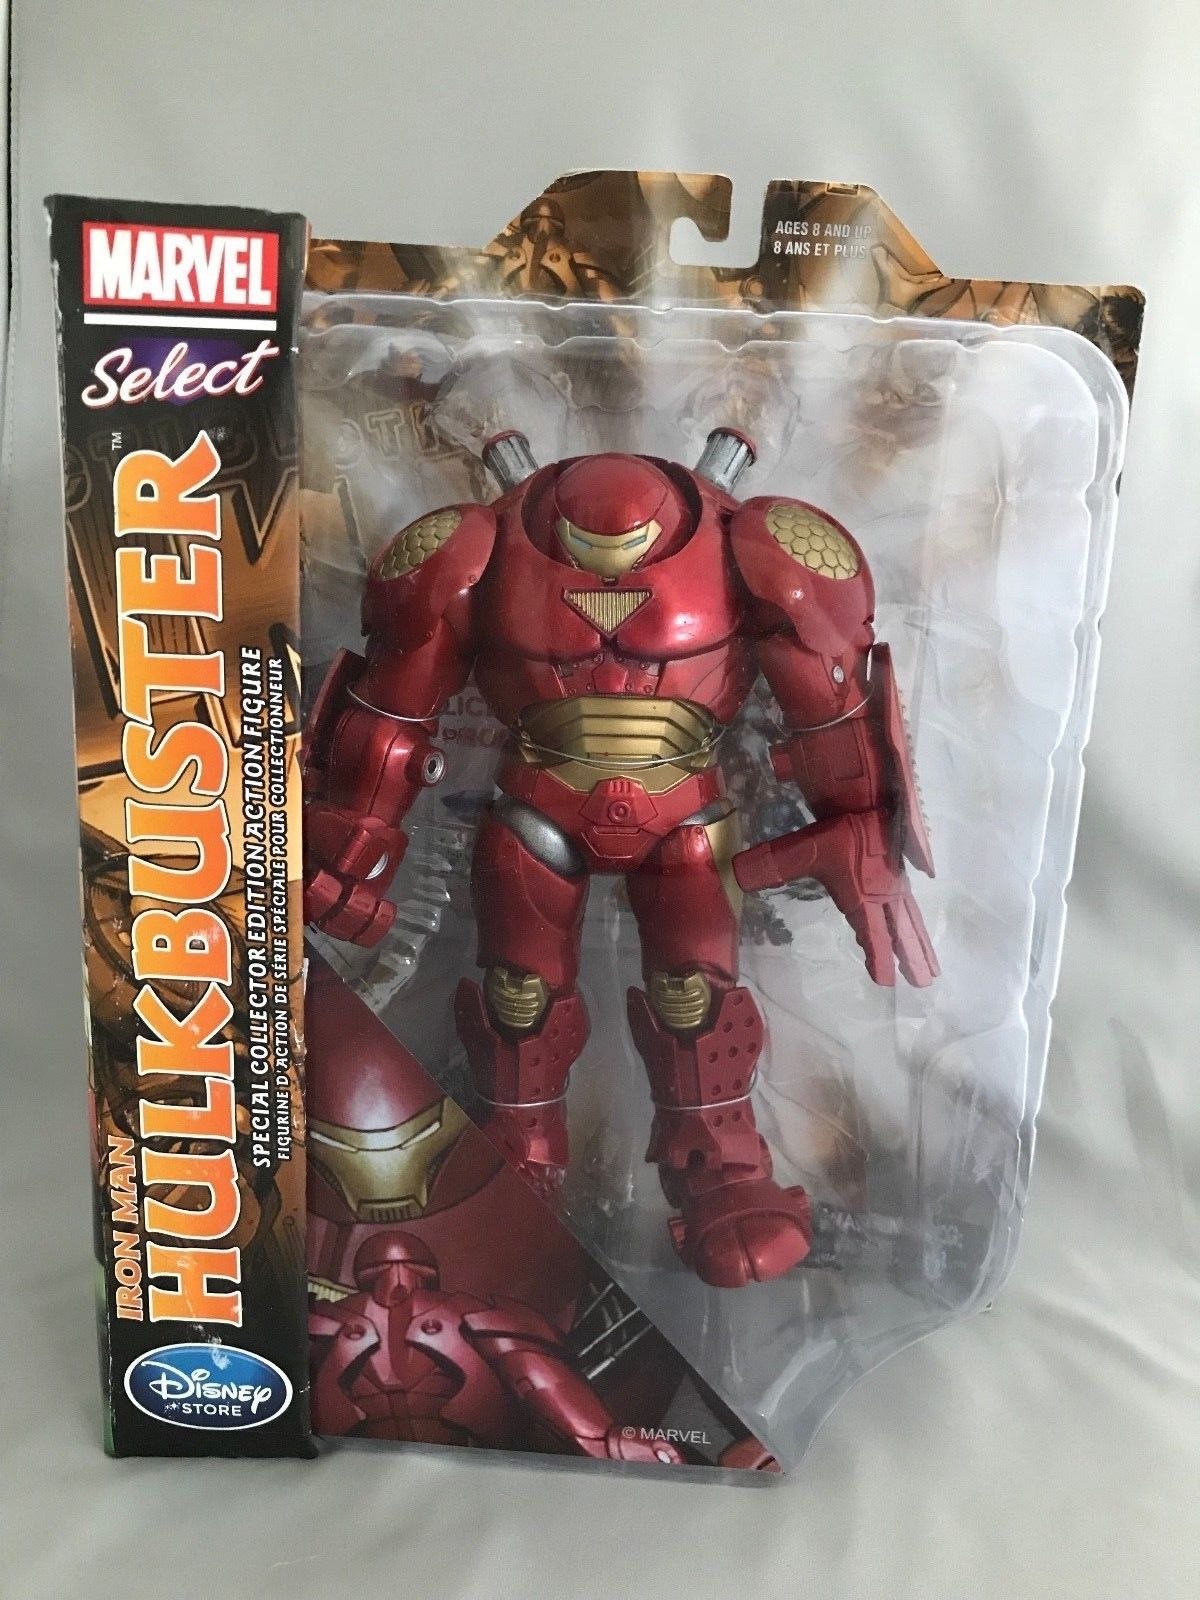 Marvel Select Hulkbuster Special Collector Edition - Disney Store Exclusive https://t.co/PX6Uom7giA #disneystore